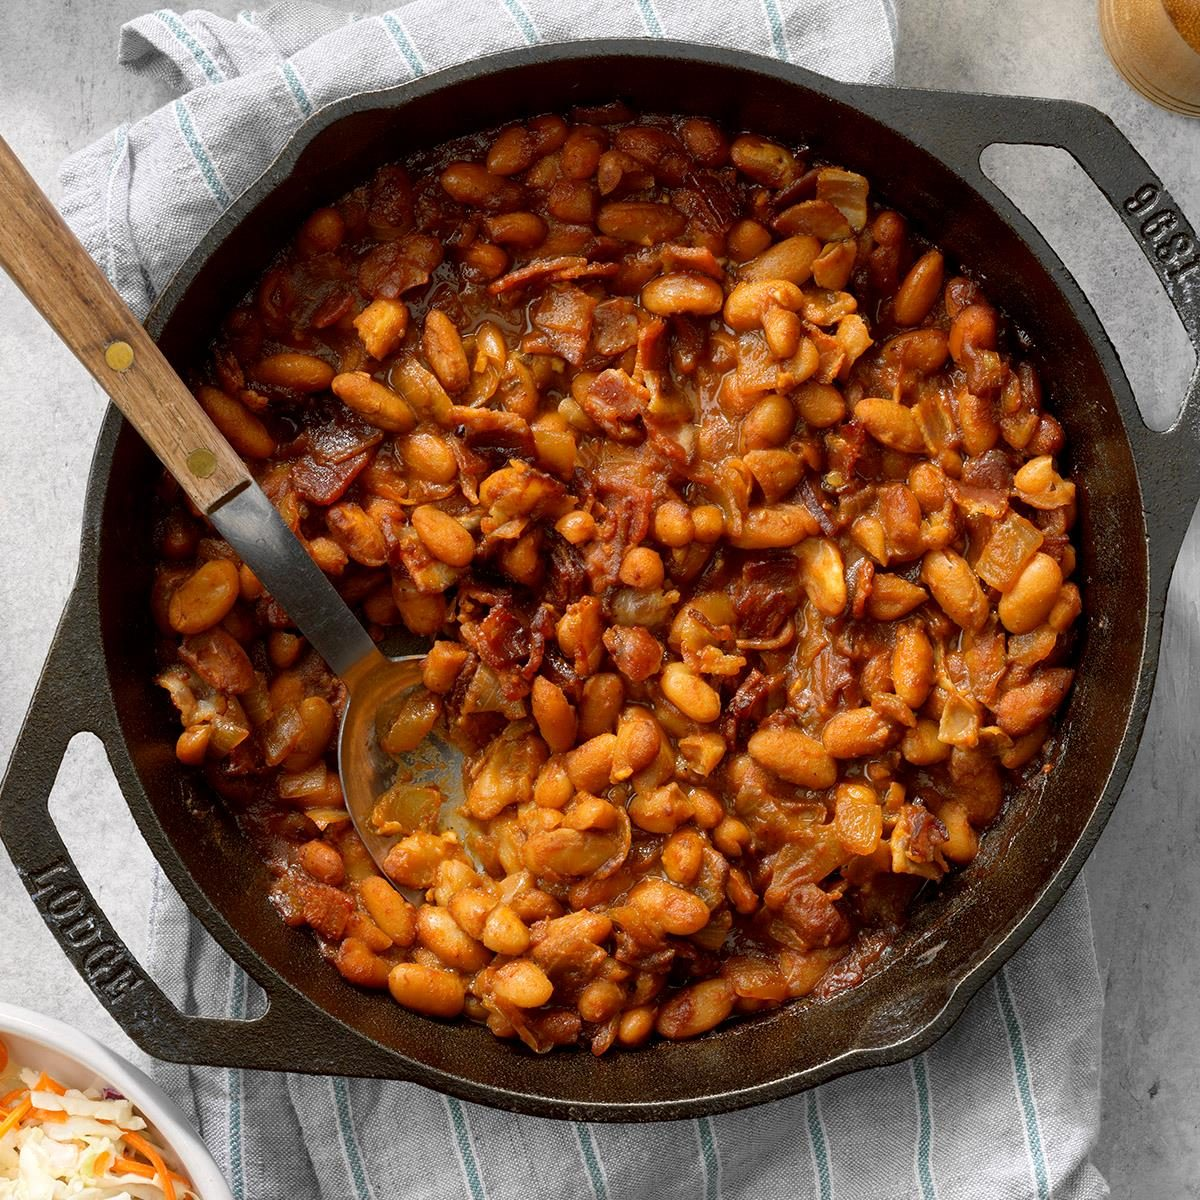 Runner-Up: Baked Cannellini Beans